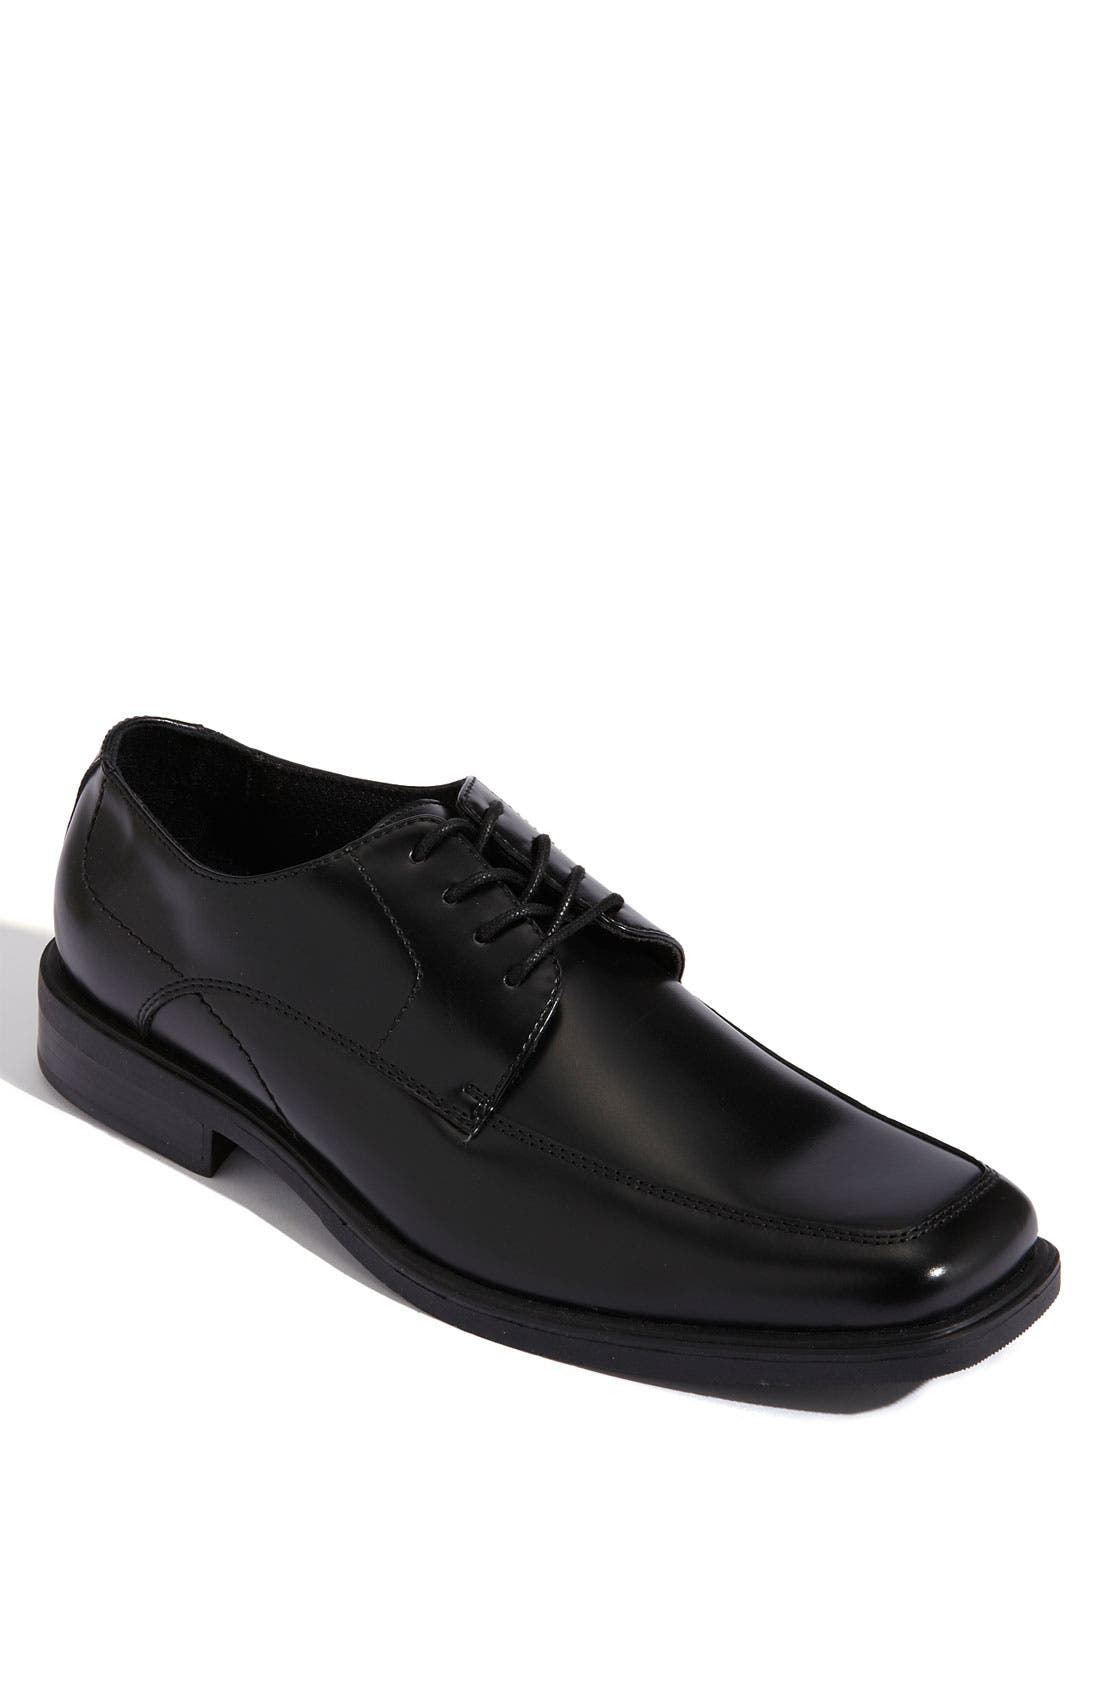 Alternate Image 1 Selected - Kenneth Cole Reaction 'Serve Ice Based' Oxford